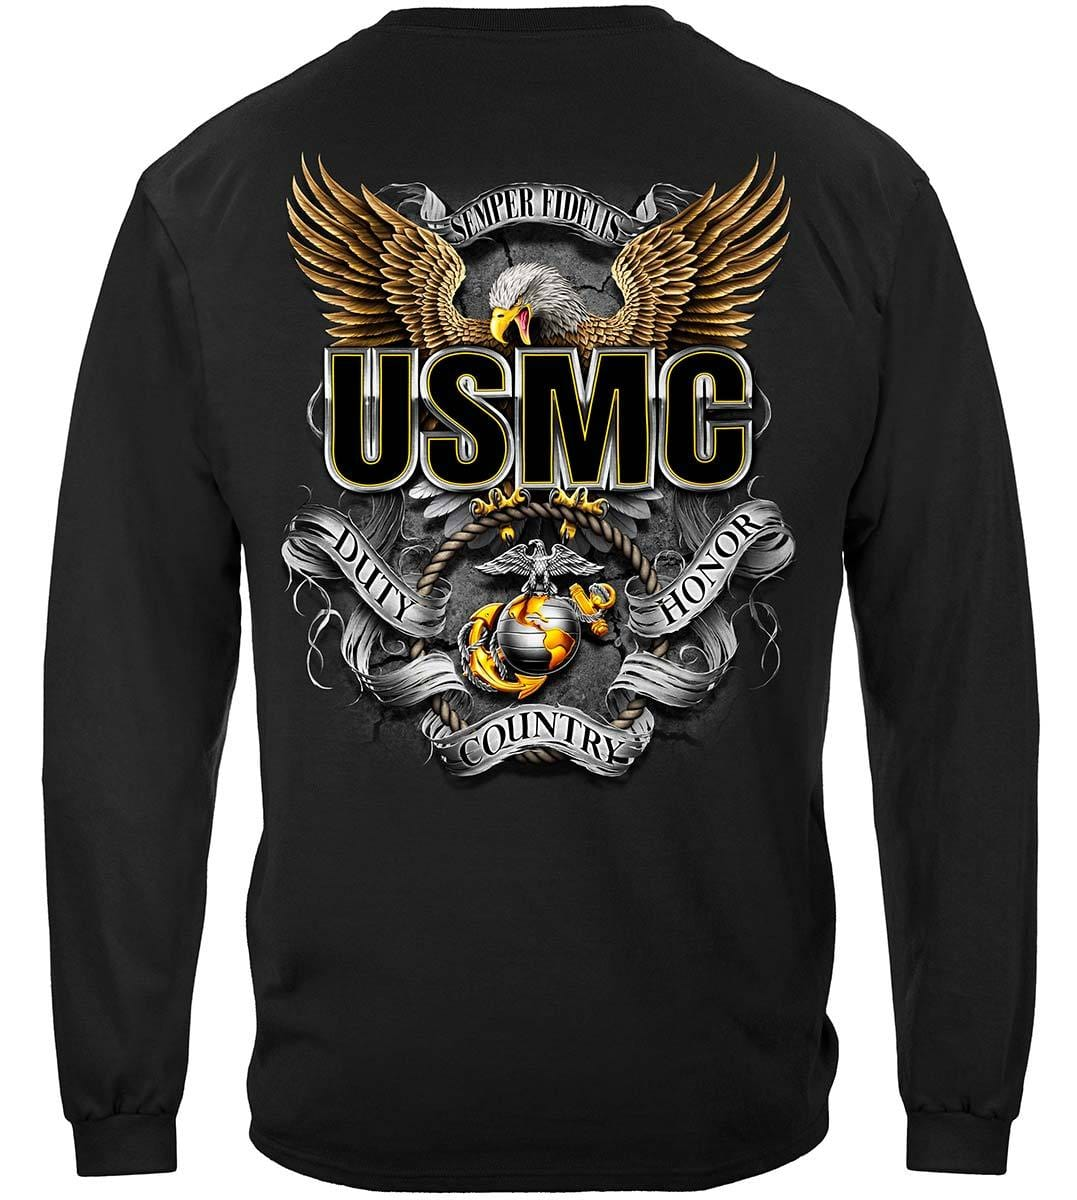 USMC Duty Honor Country Screaming Eagle Premium Long Sleeves